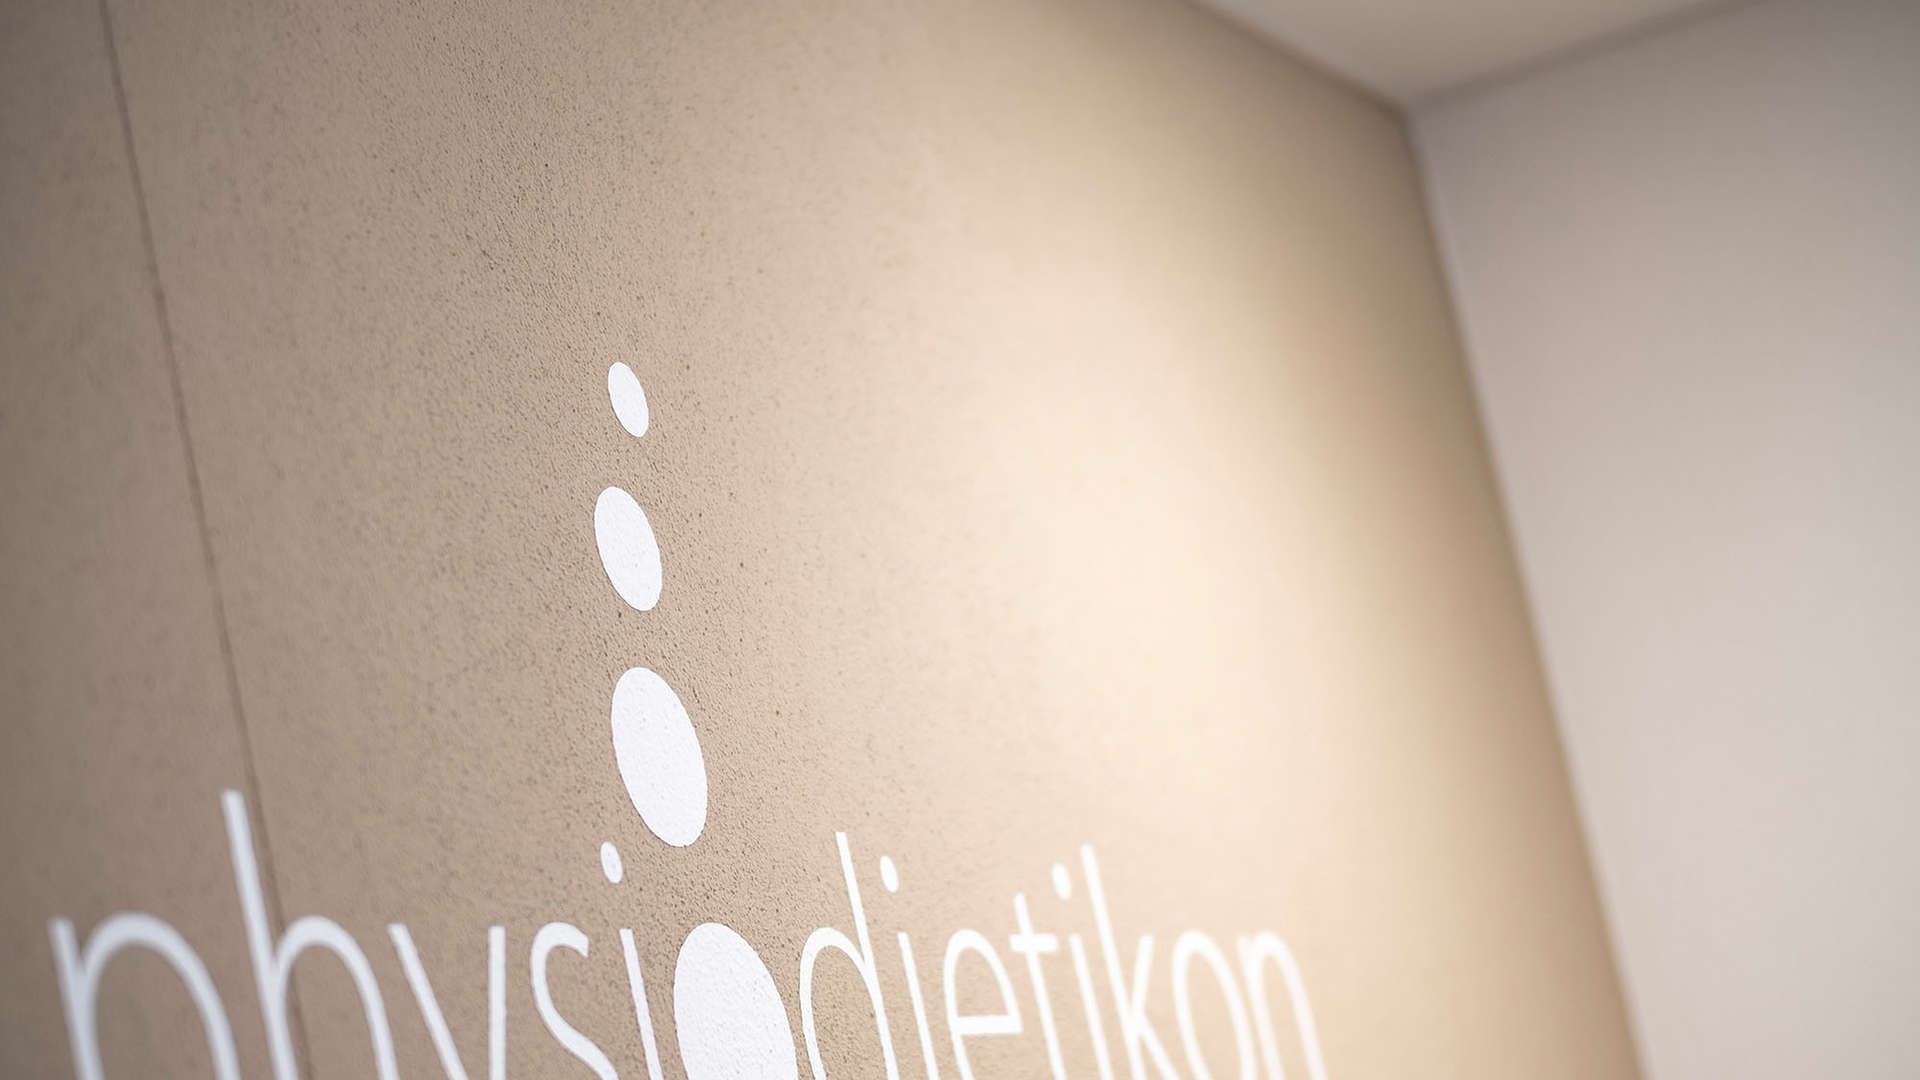 Physiotherapie Dietikon, PhysioDietikon GmbH